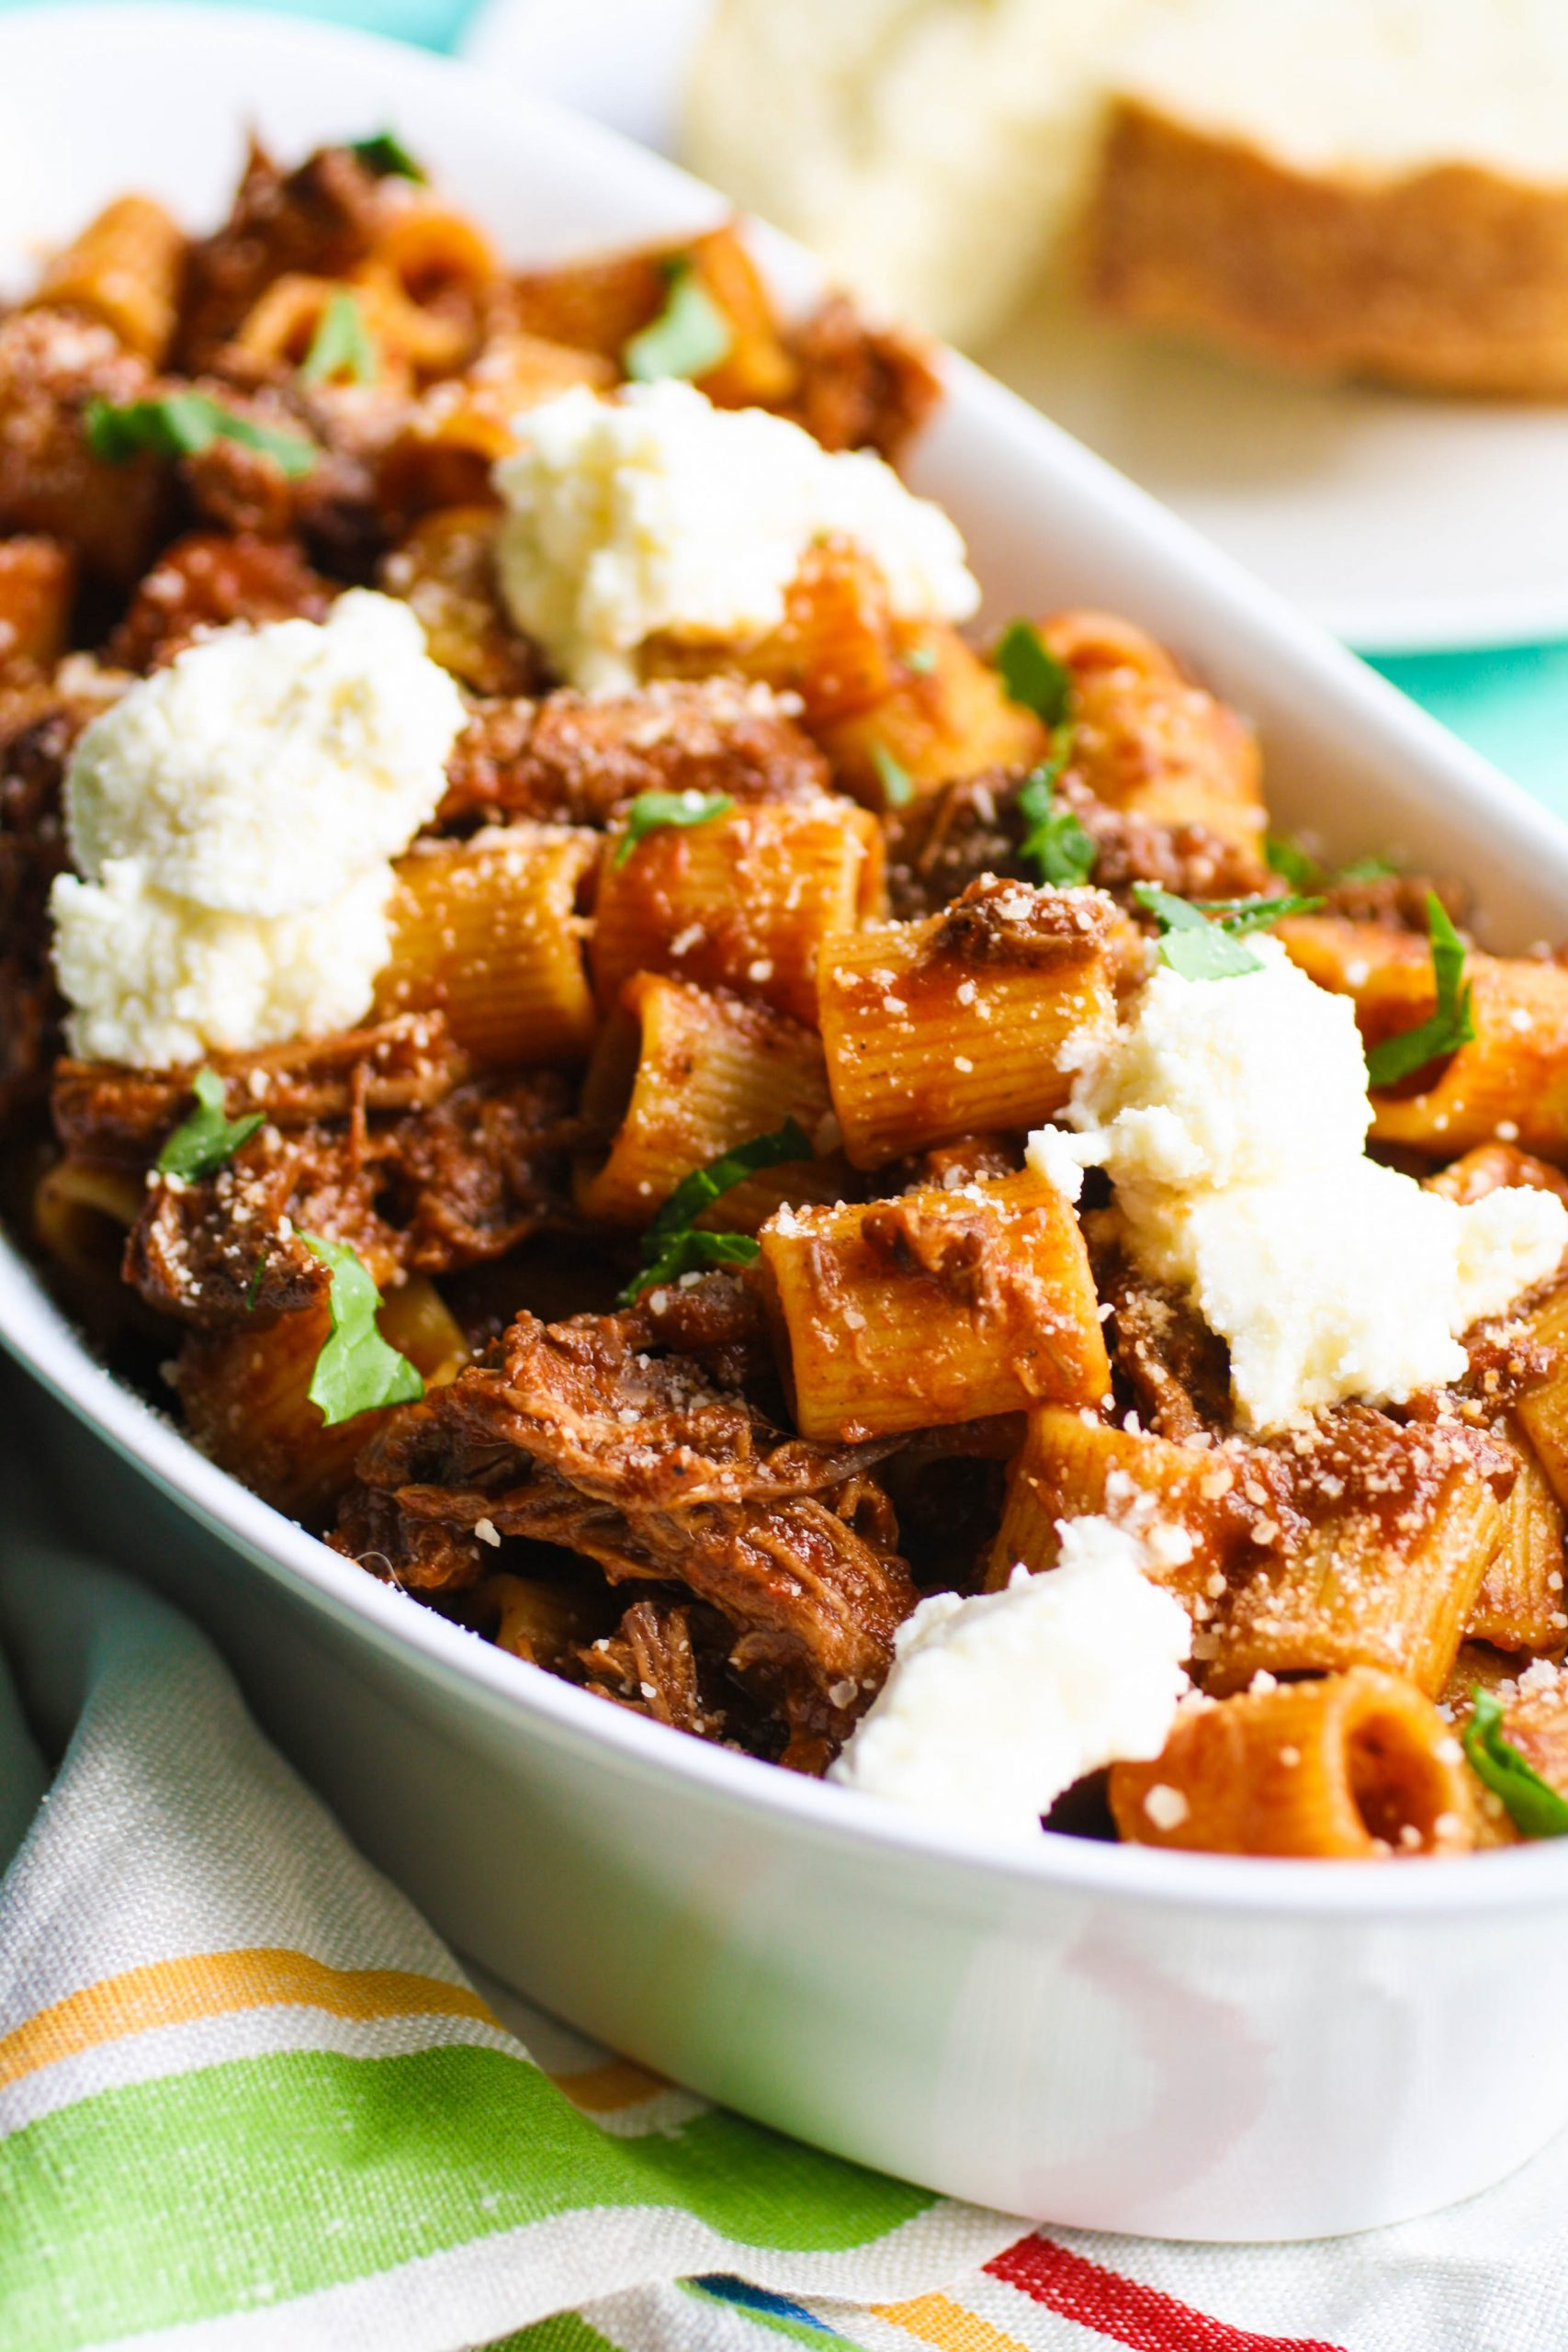 Pasta with short ribs and ricotta is a creamy and delicious dish.